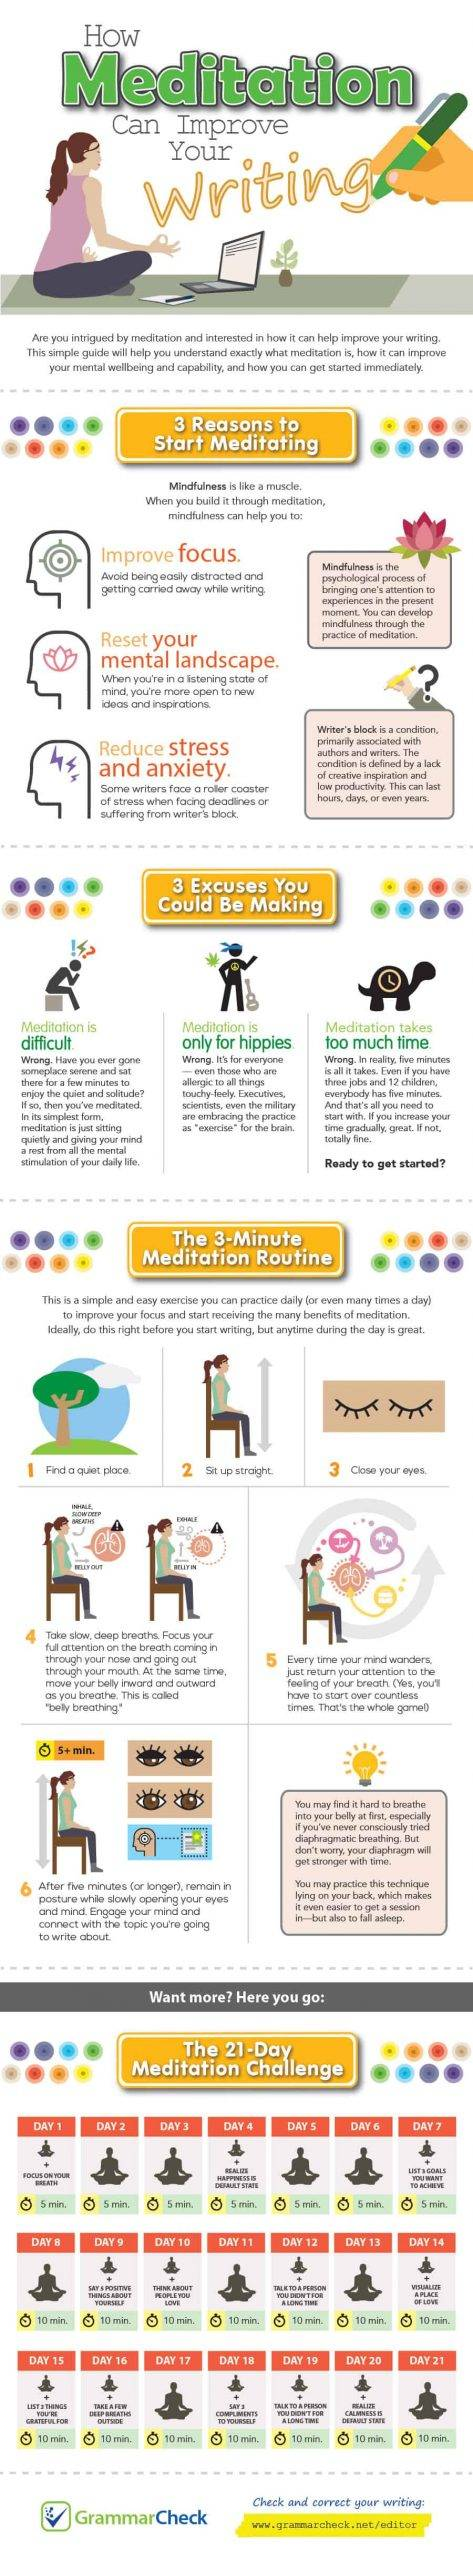 How Meditation Can Improve Your Writing Skills - Infographic